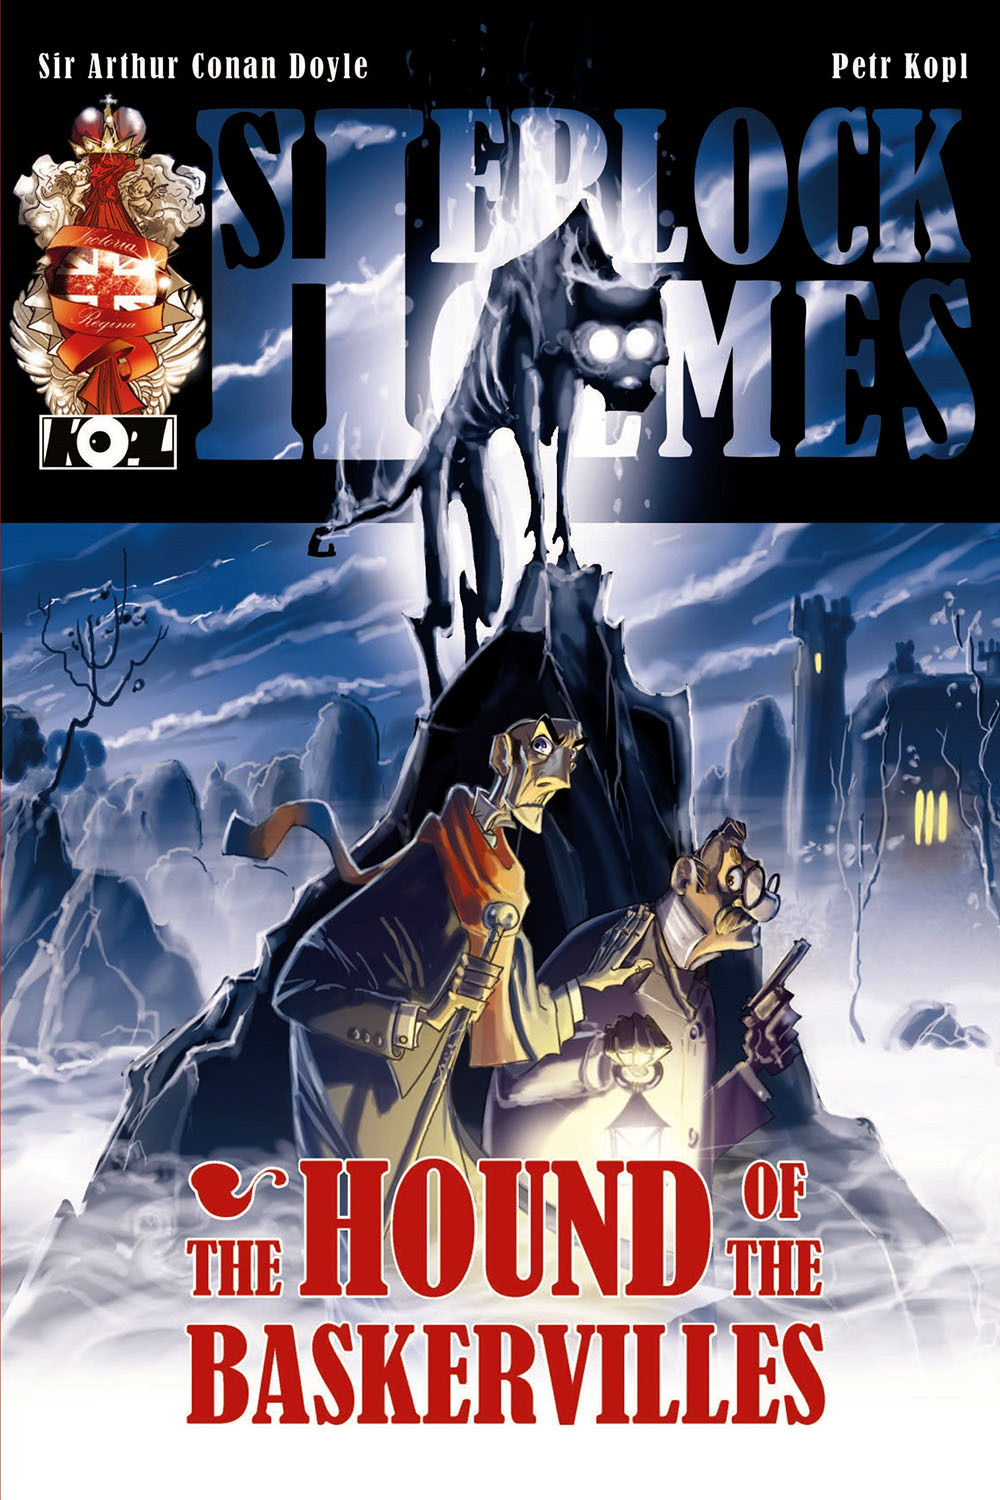 Kopl, Petr - The Hound of the Baskervilles - A Sherlock Holmes Graphic Novel, ebook